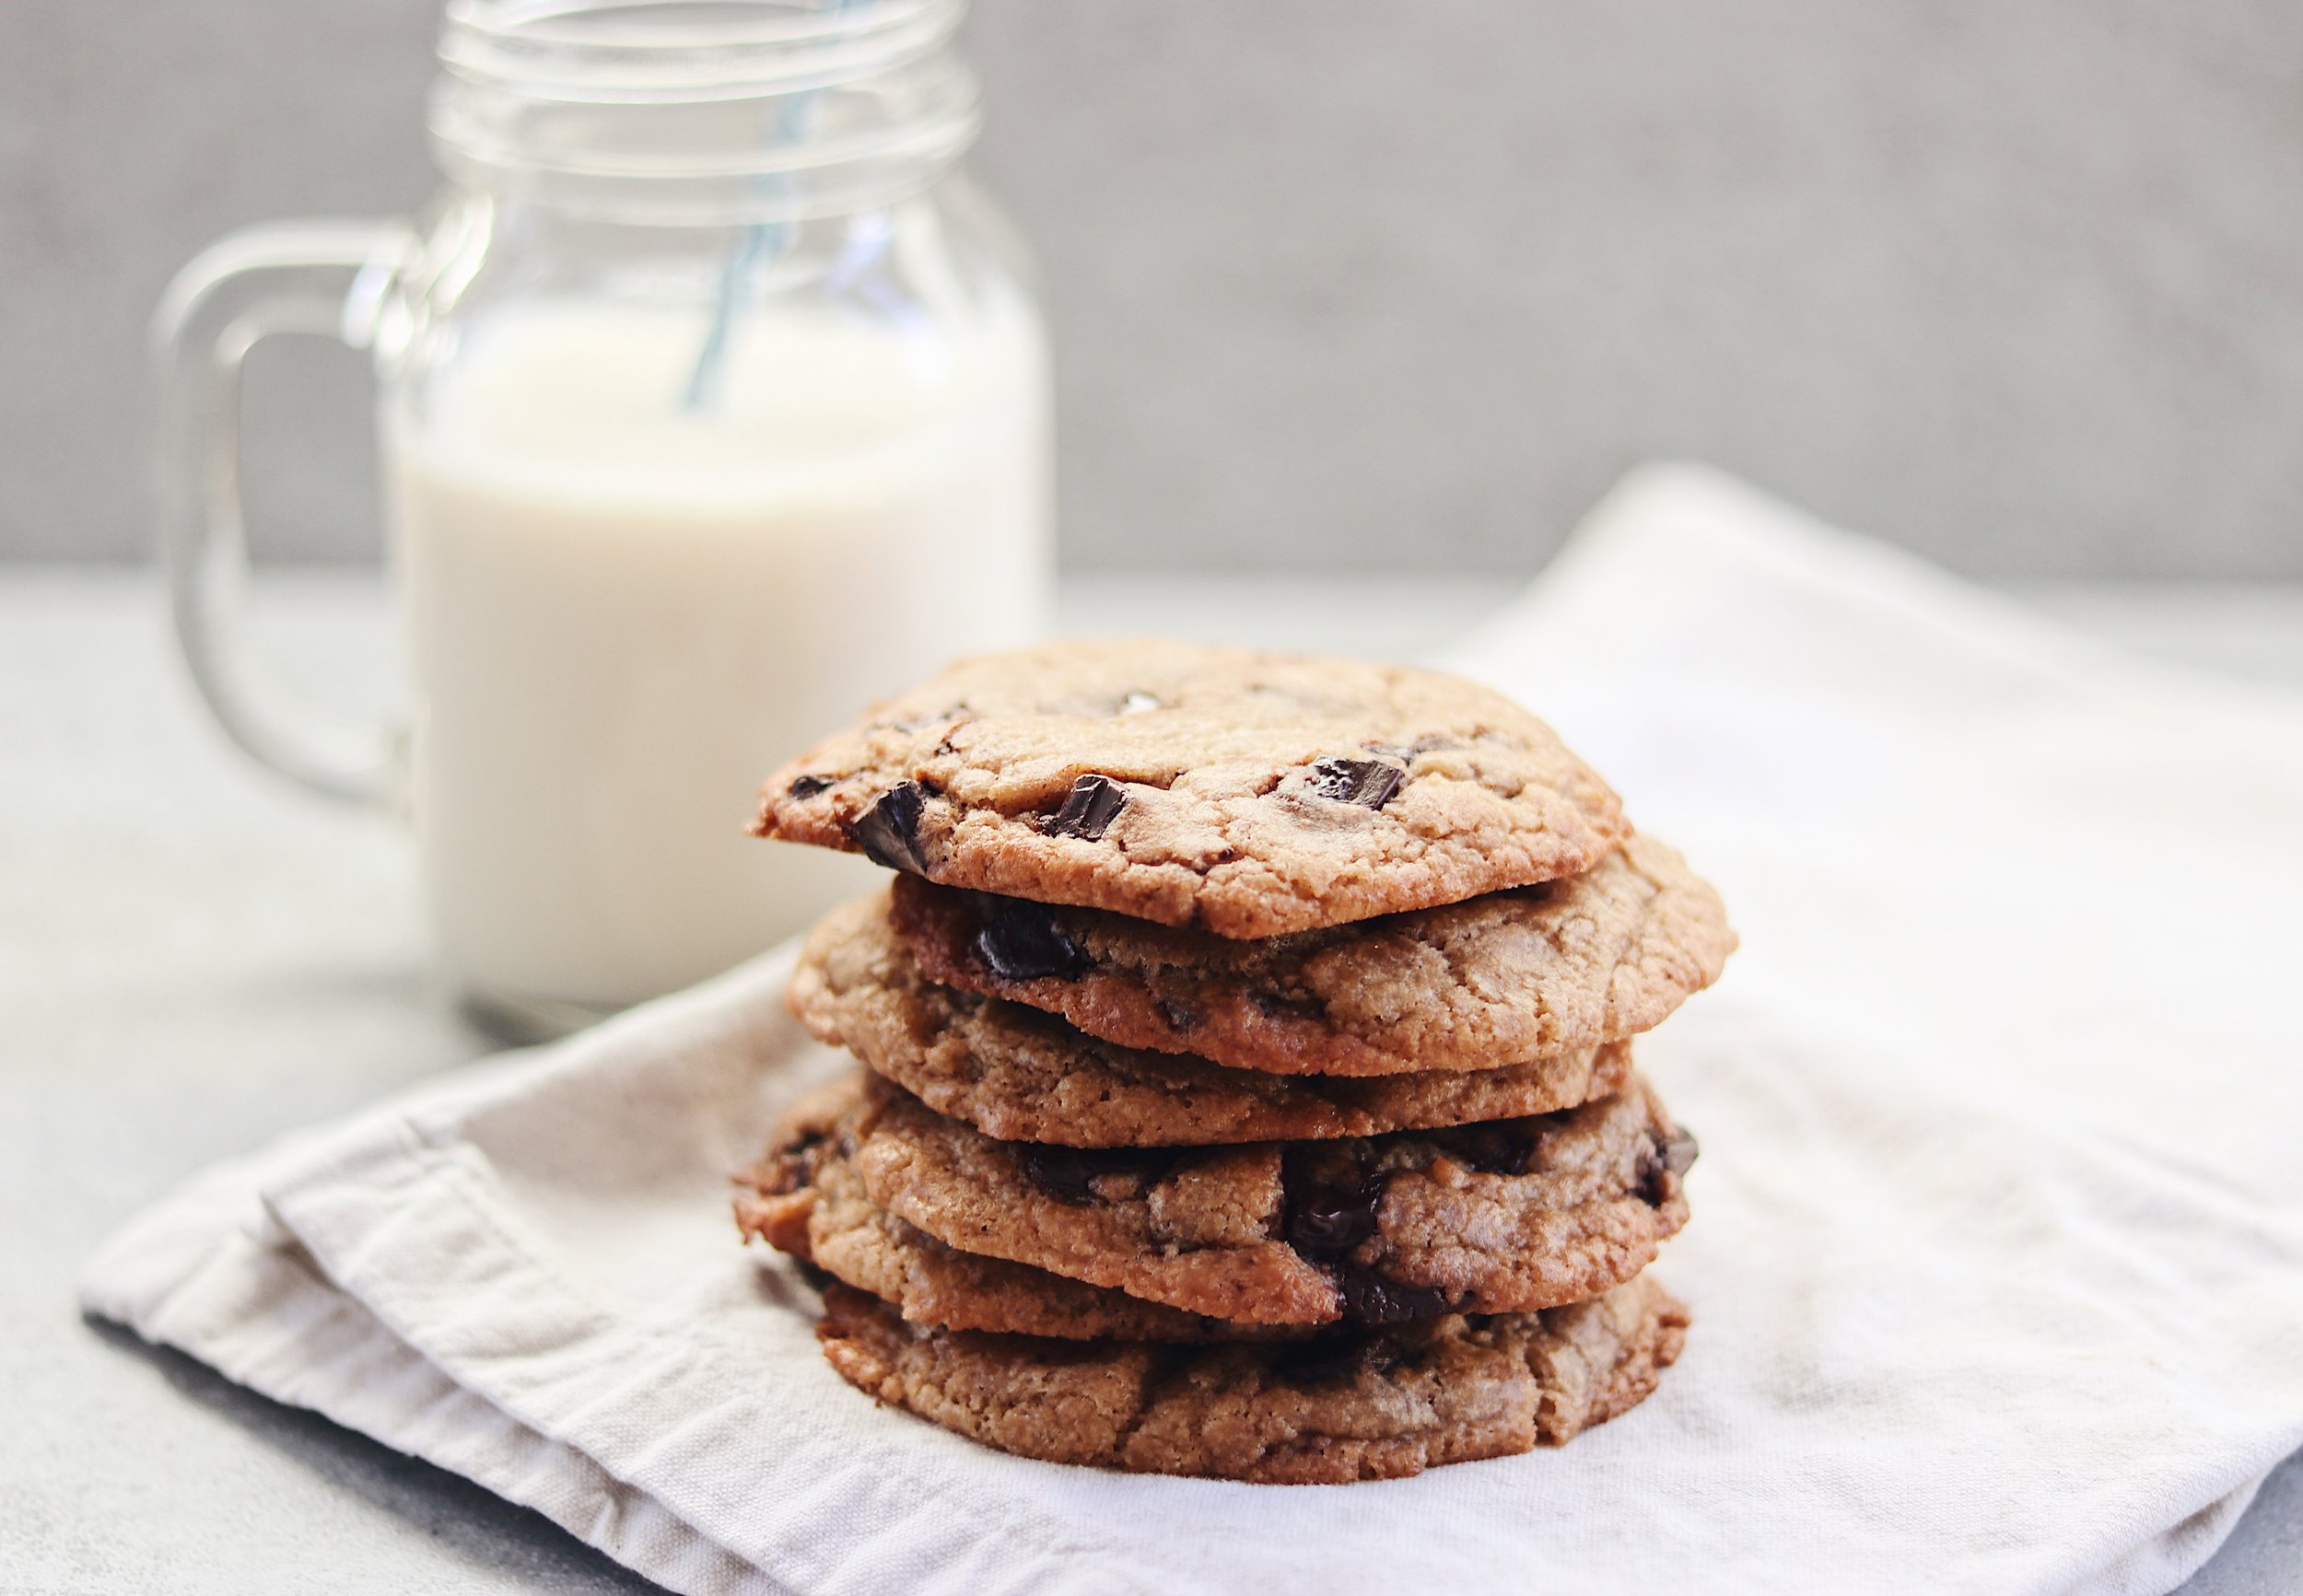 Gooey, melt-in-your-mouth, crumbly cookies that your friends won't believe are vegan! - prep time 10-15 mins total time 20-30 mins serves 10